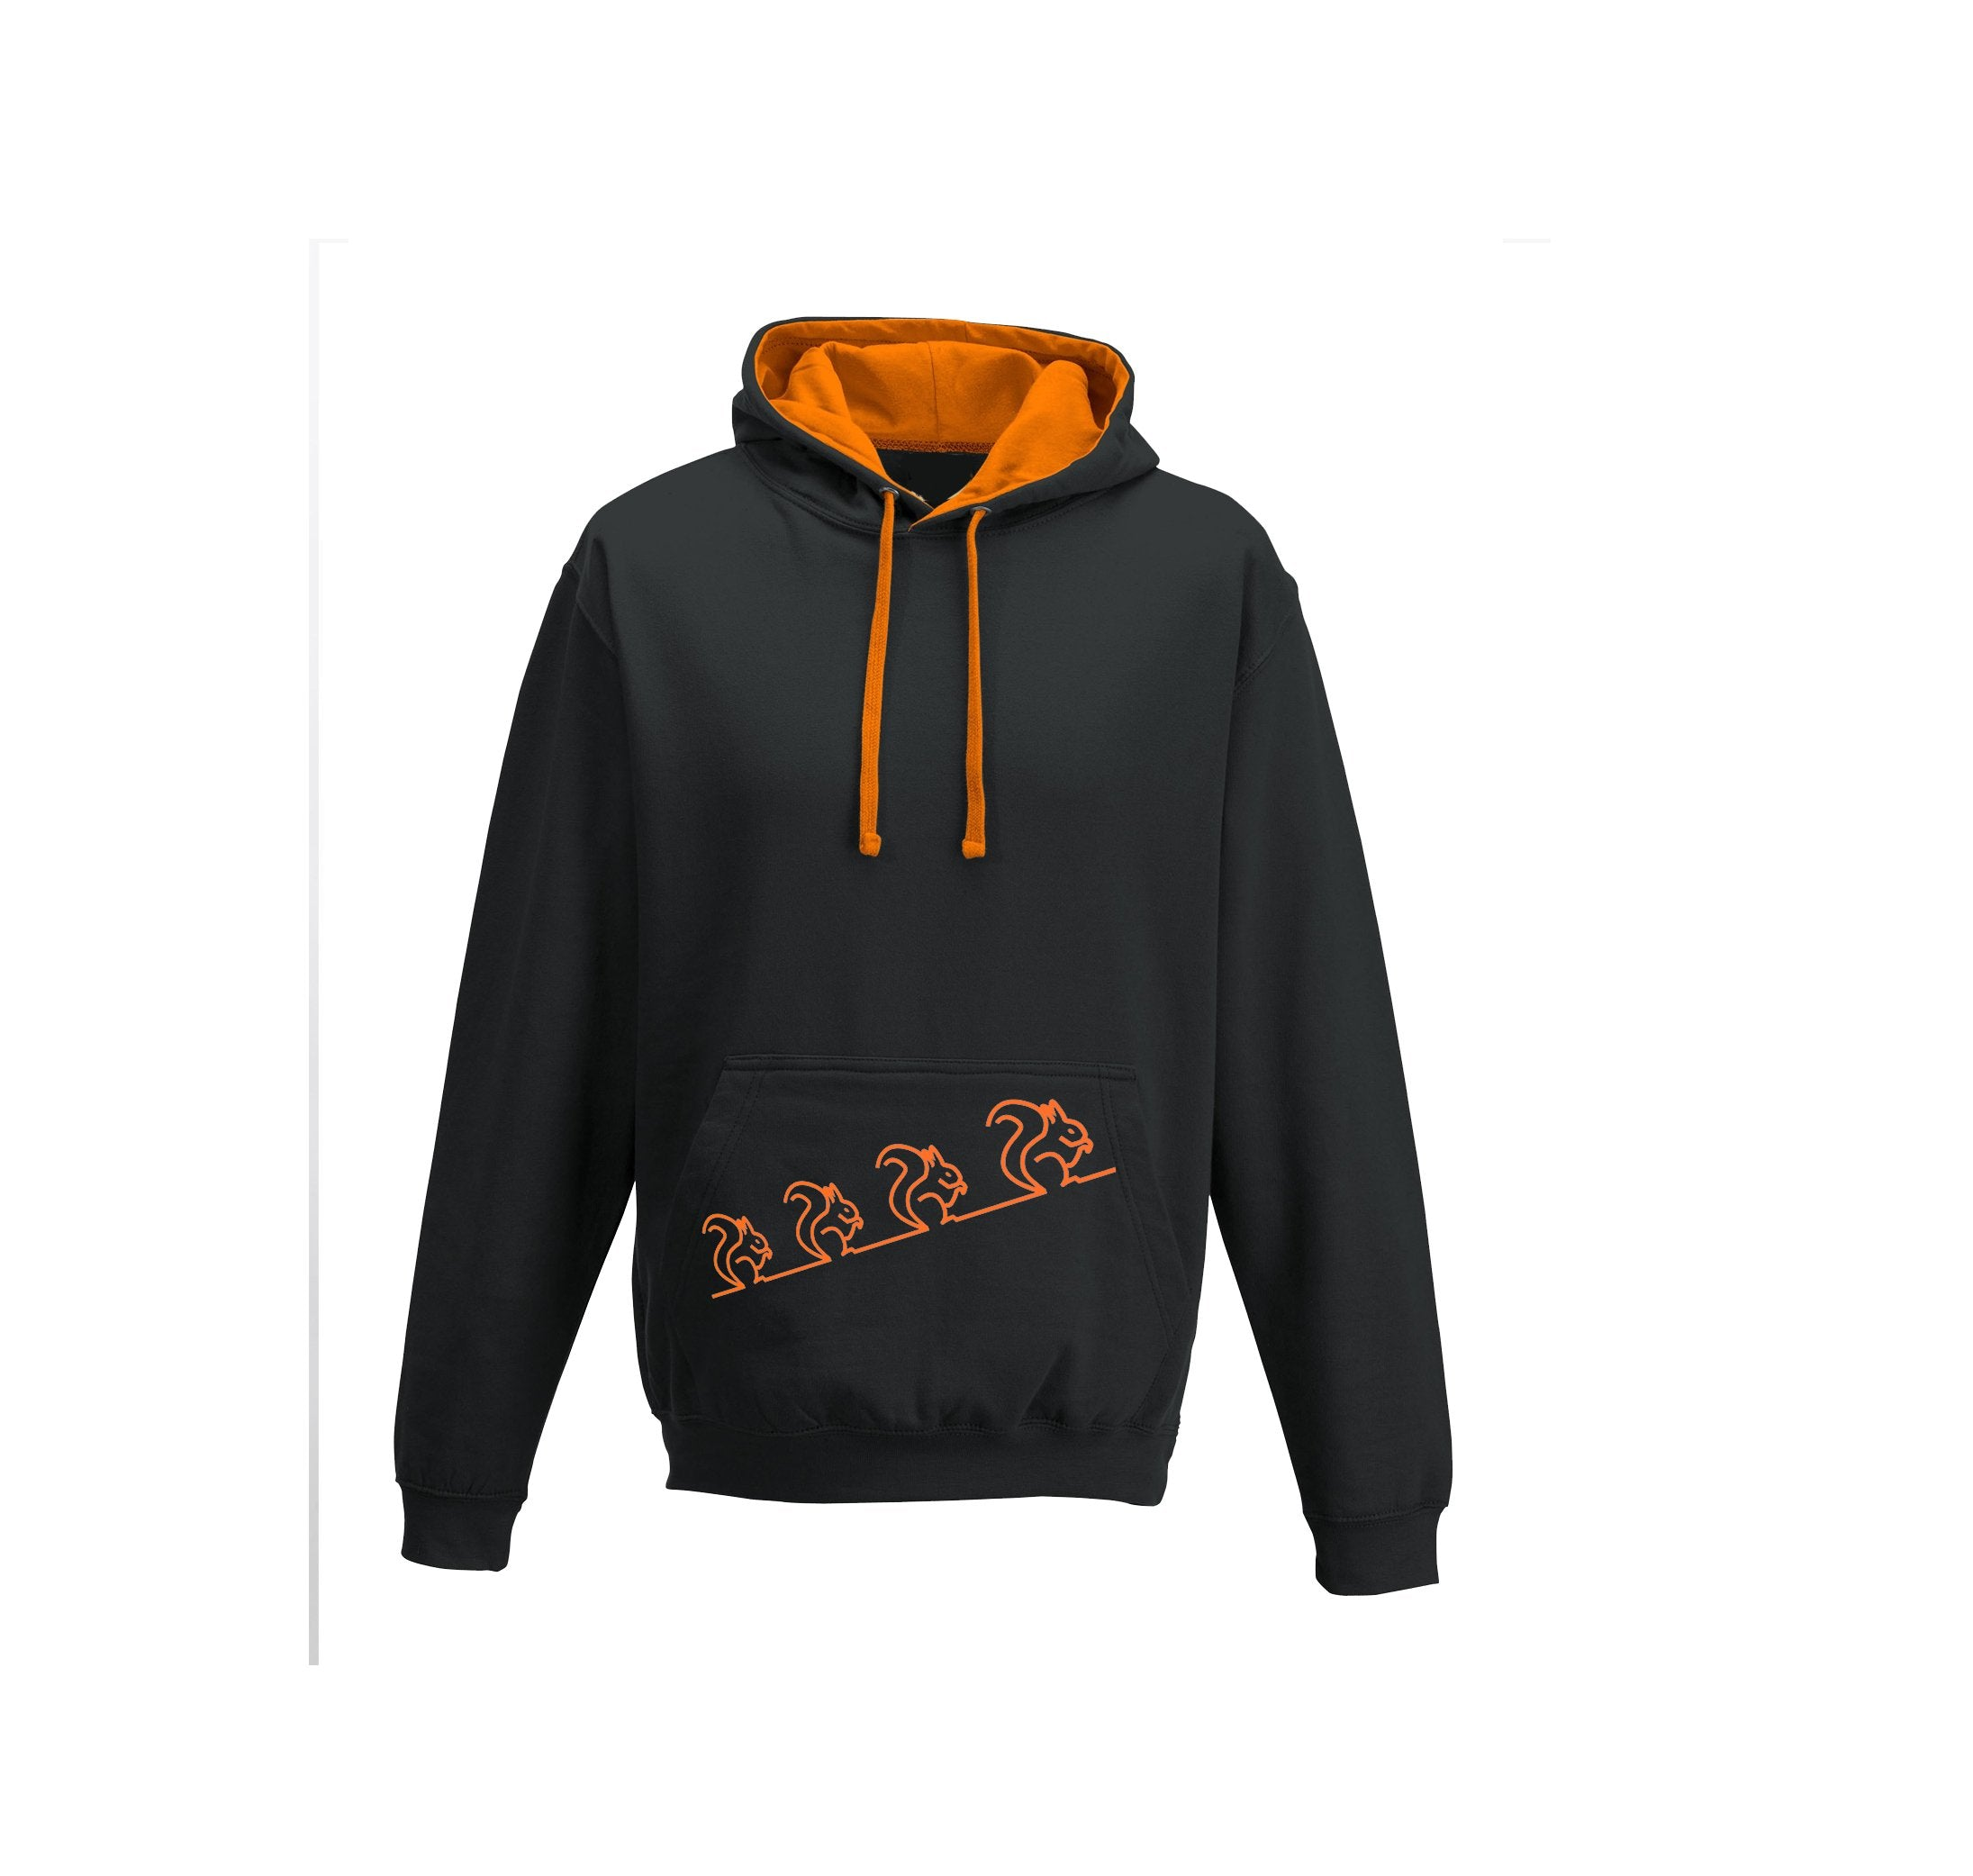 Hoodie - Squirrels Hoodie, Black/orange